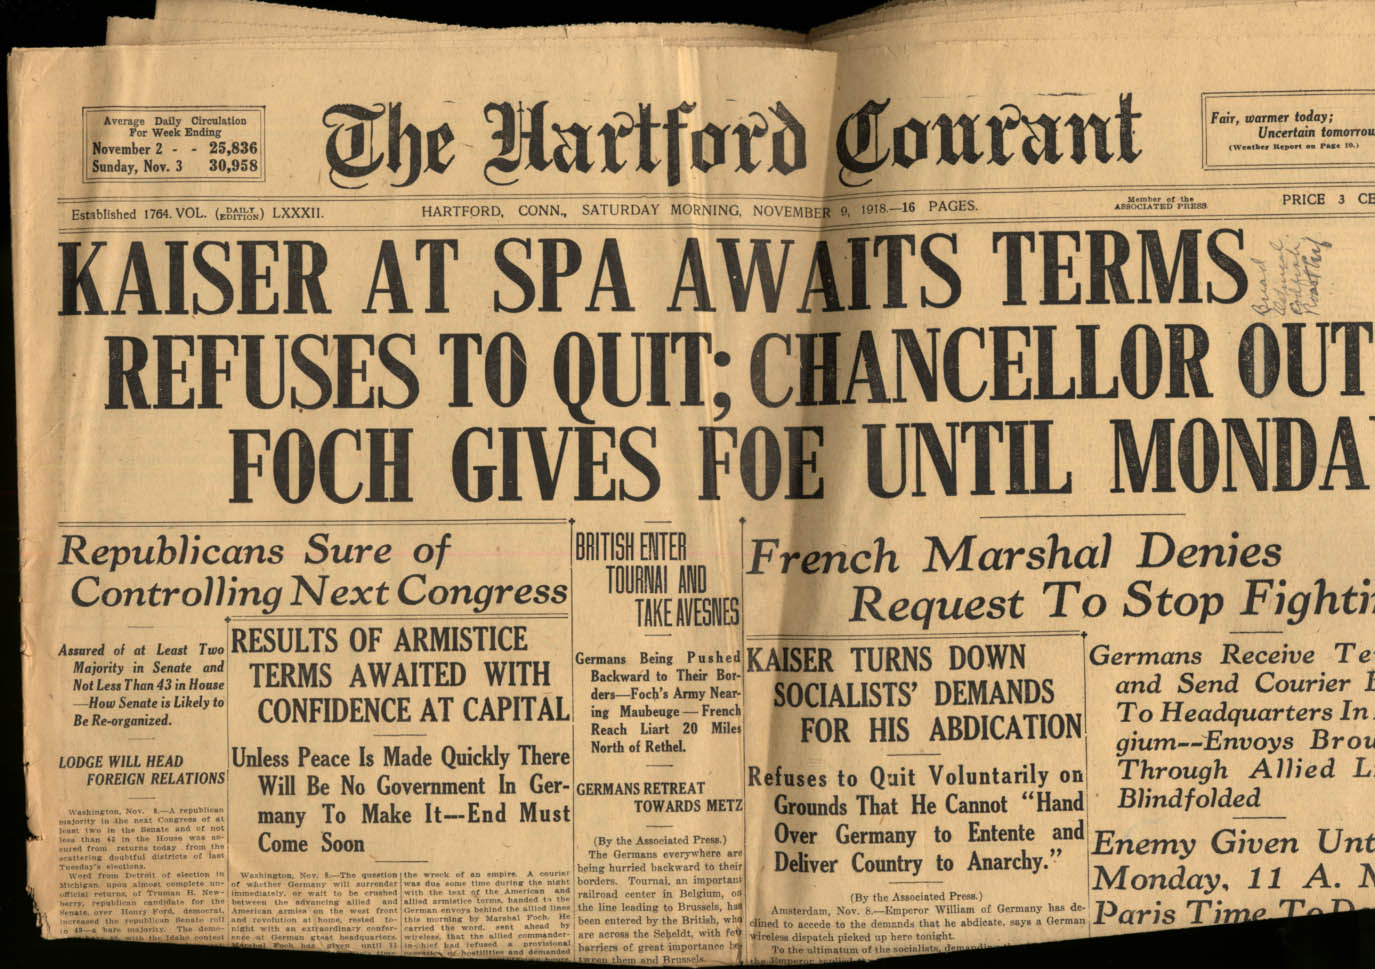 HARTFORD COURANT 11/9 1918 Kaiser Refuses to Quit; Awaits Terms